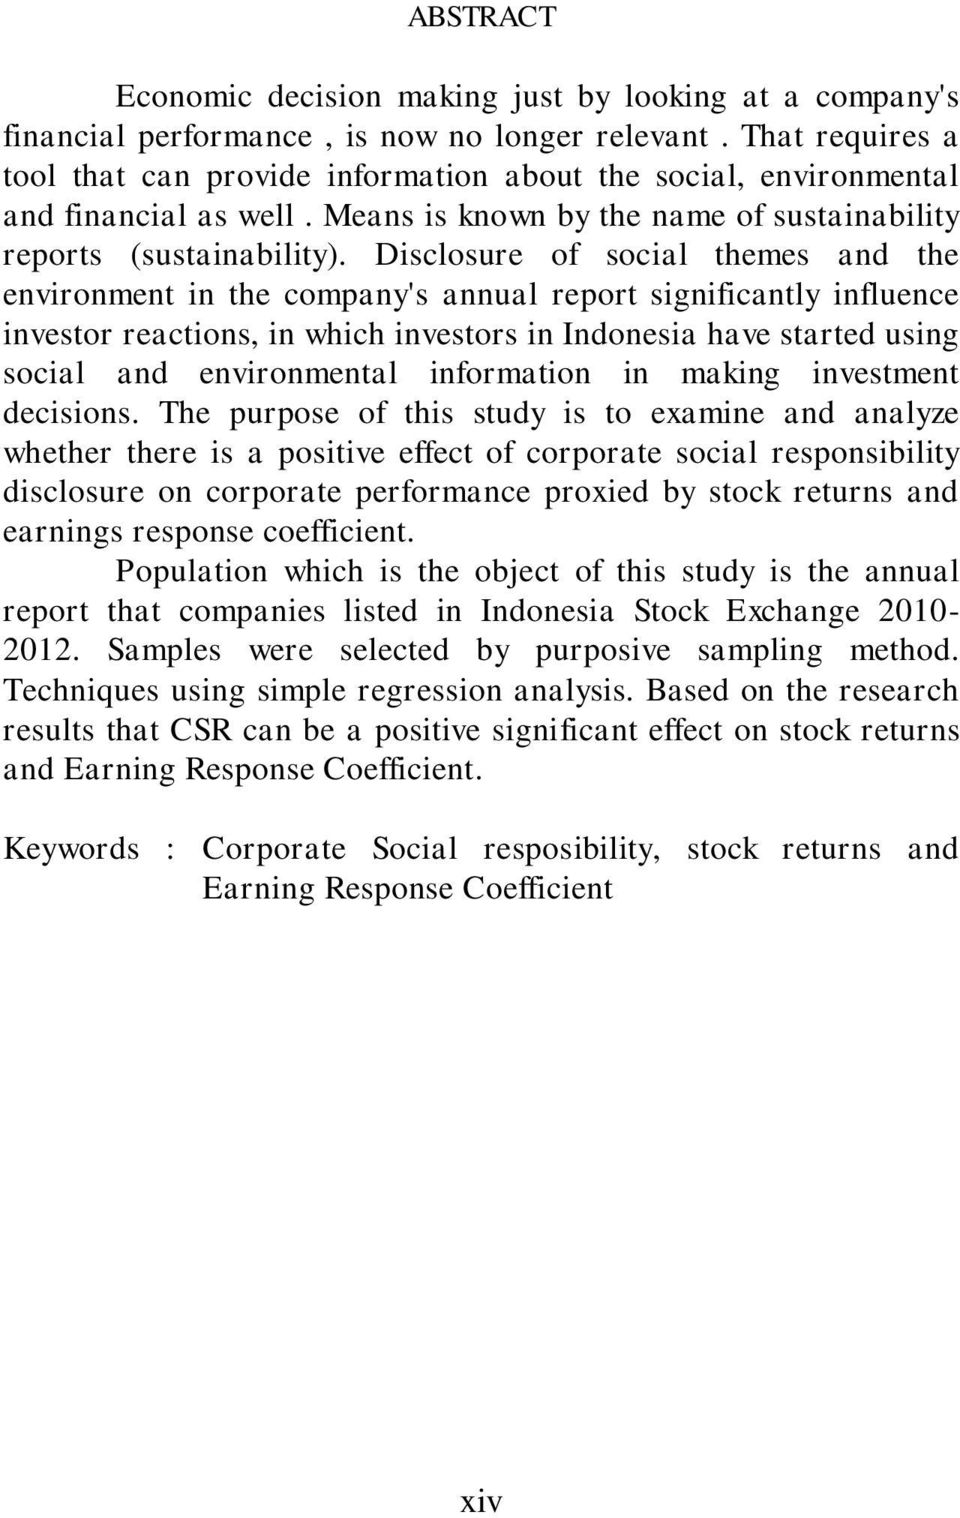 Disclosure of social themes and the environment in the company's annual report significantly influence investor reactions, in which investors in Indonesia have started using social and environmental